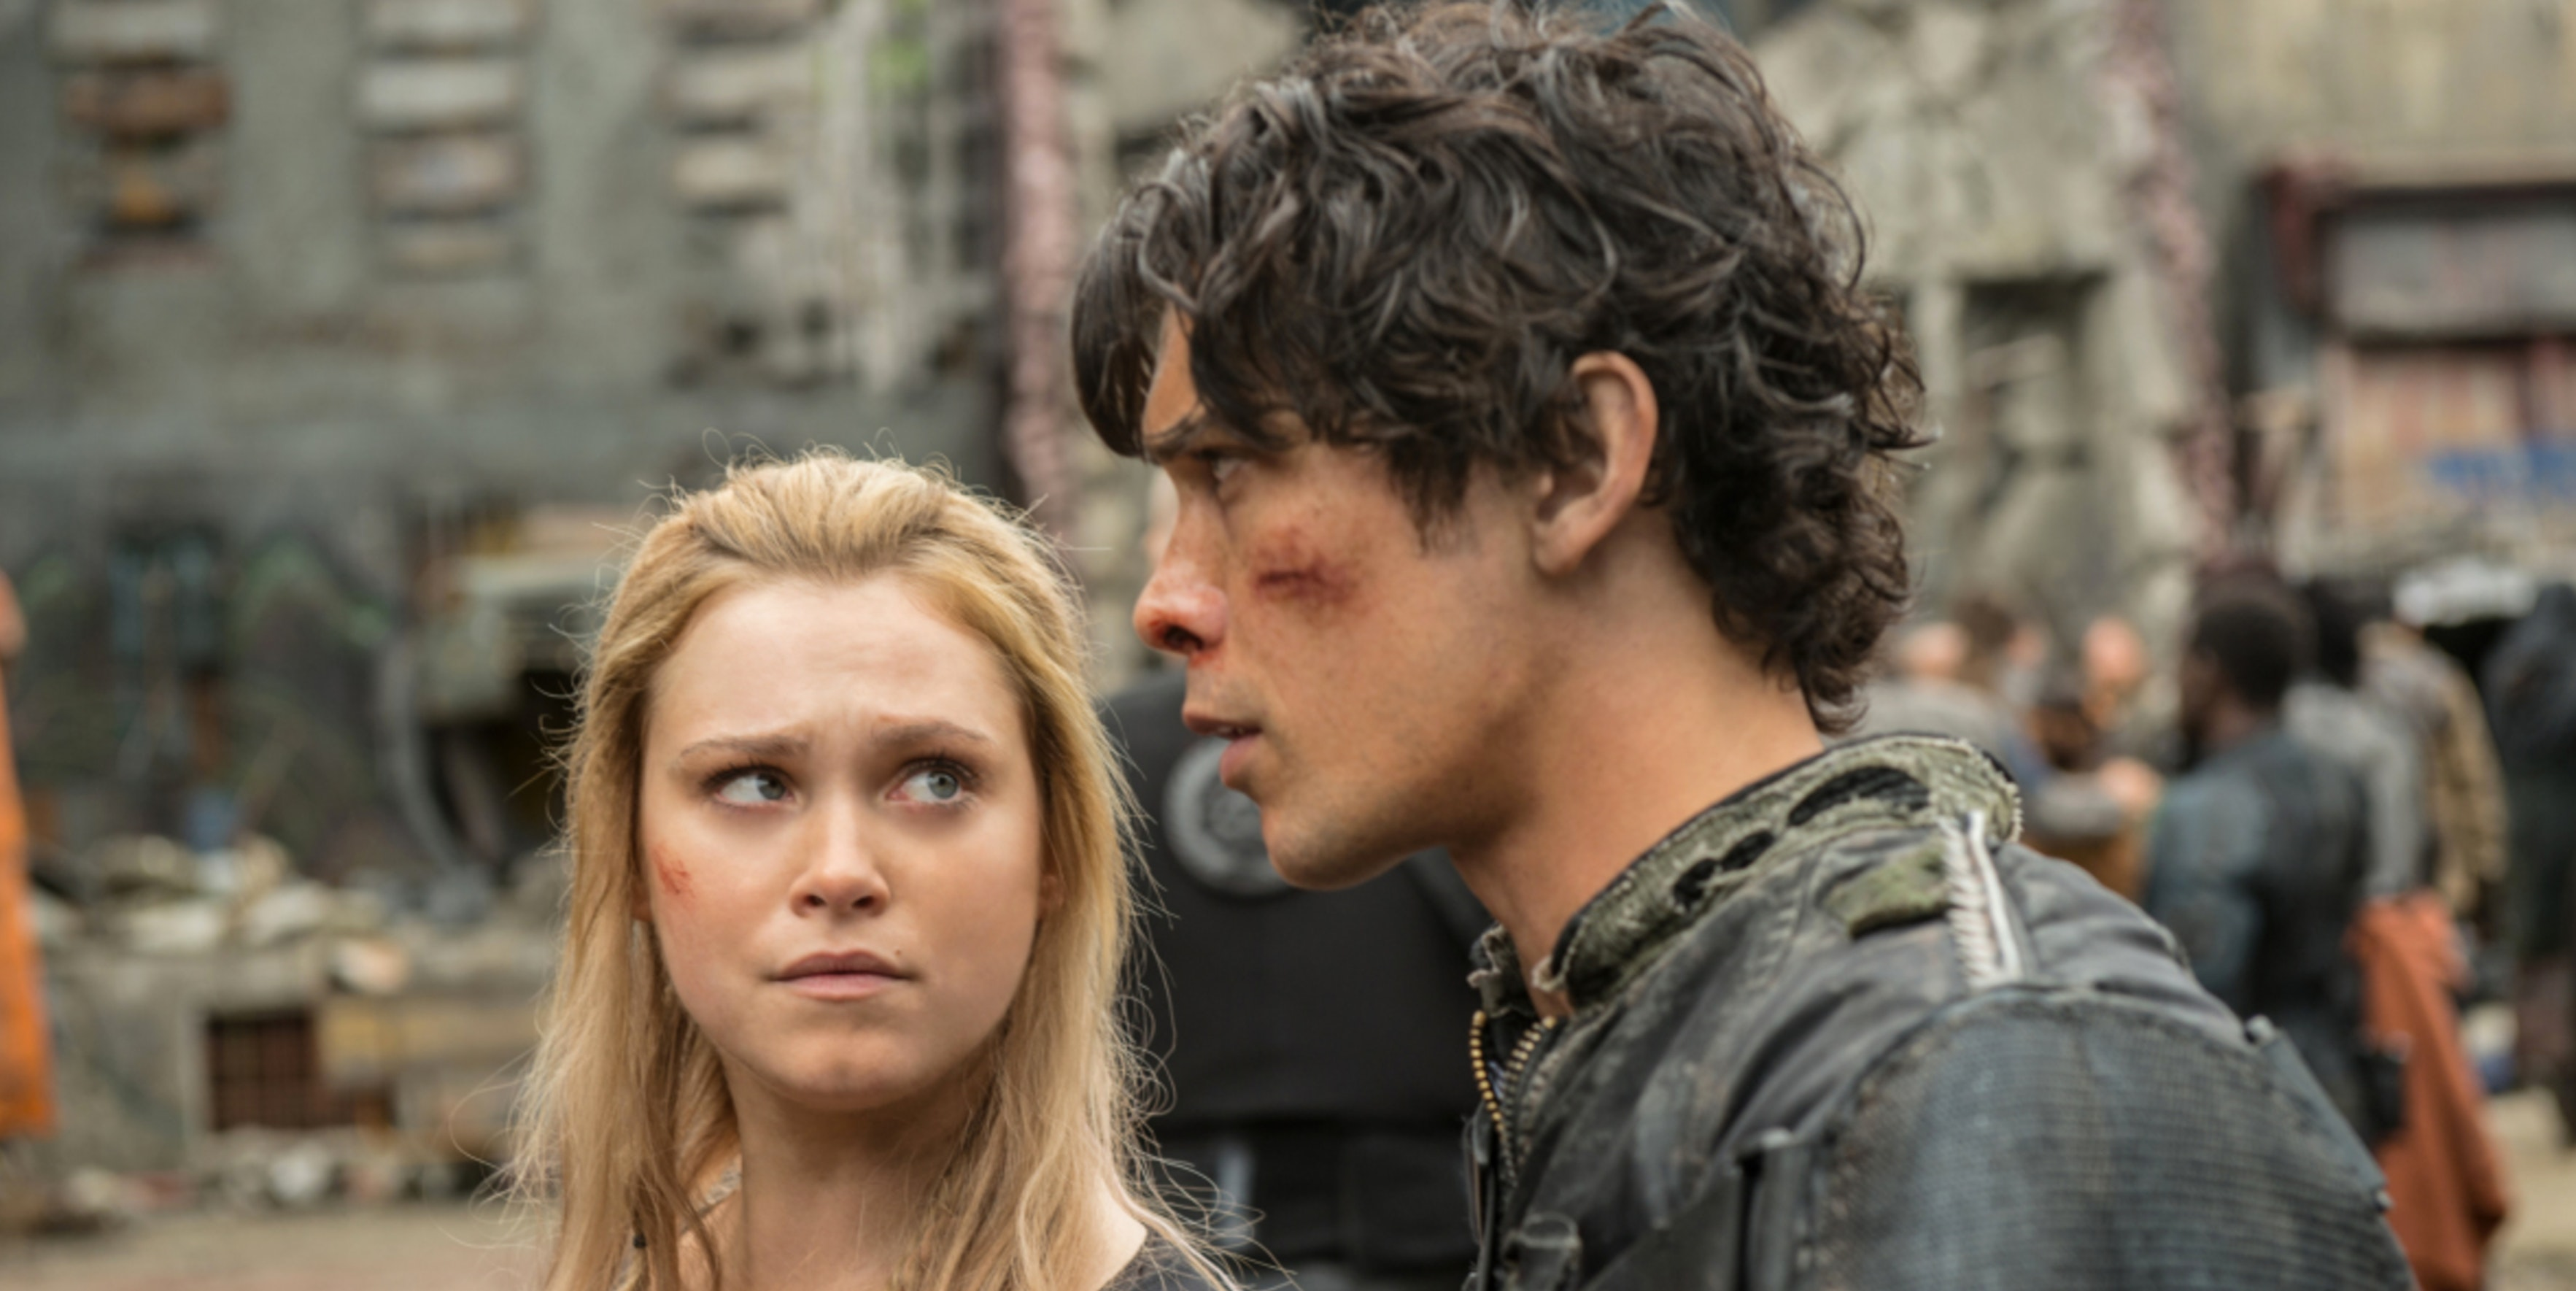 'The 100' is Finally Going to Move Past Ship Wars in Season 4